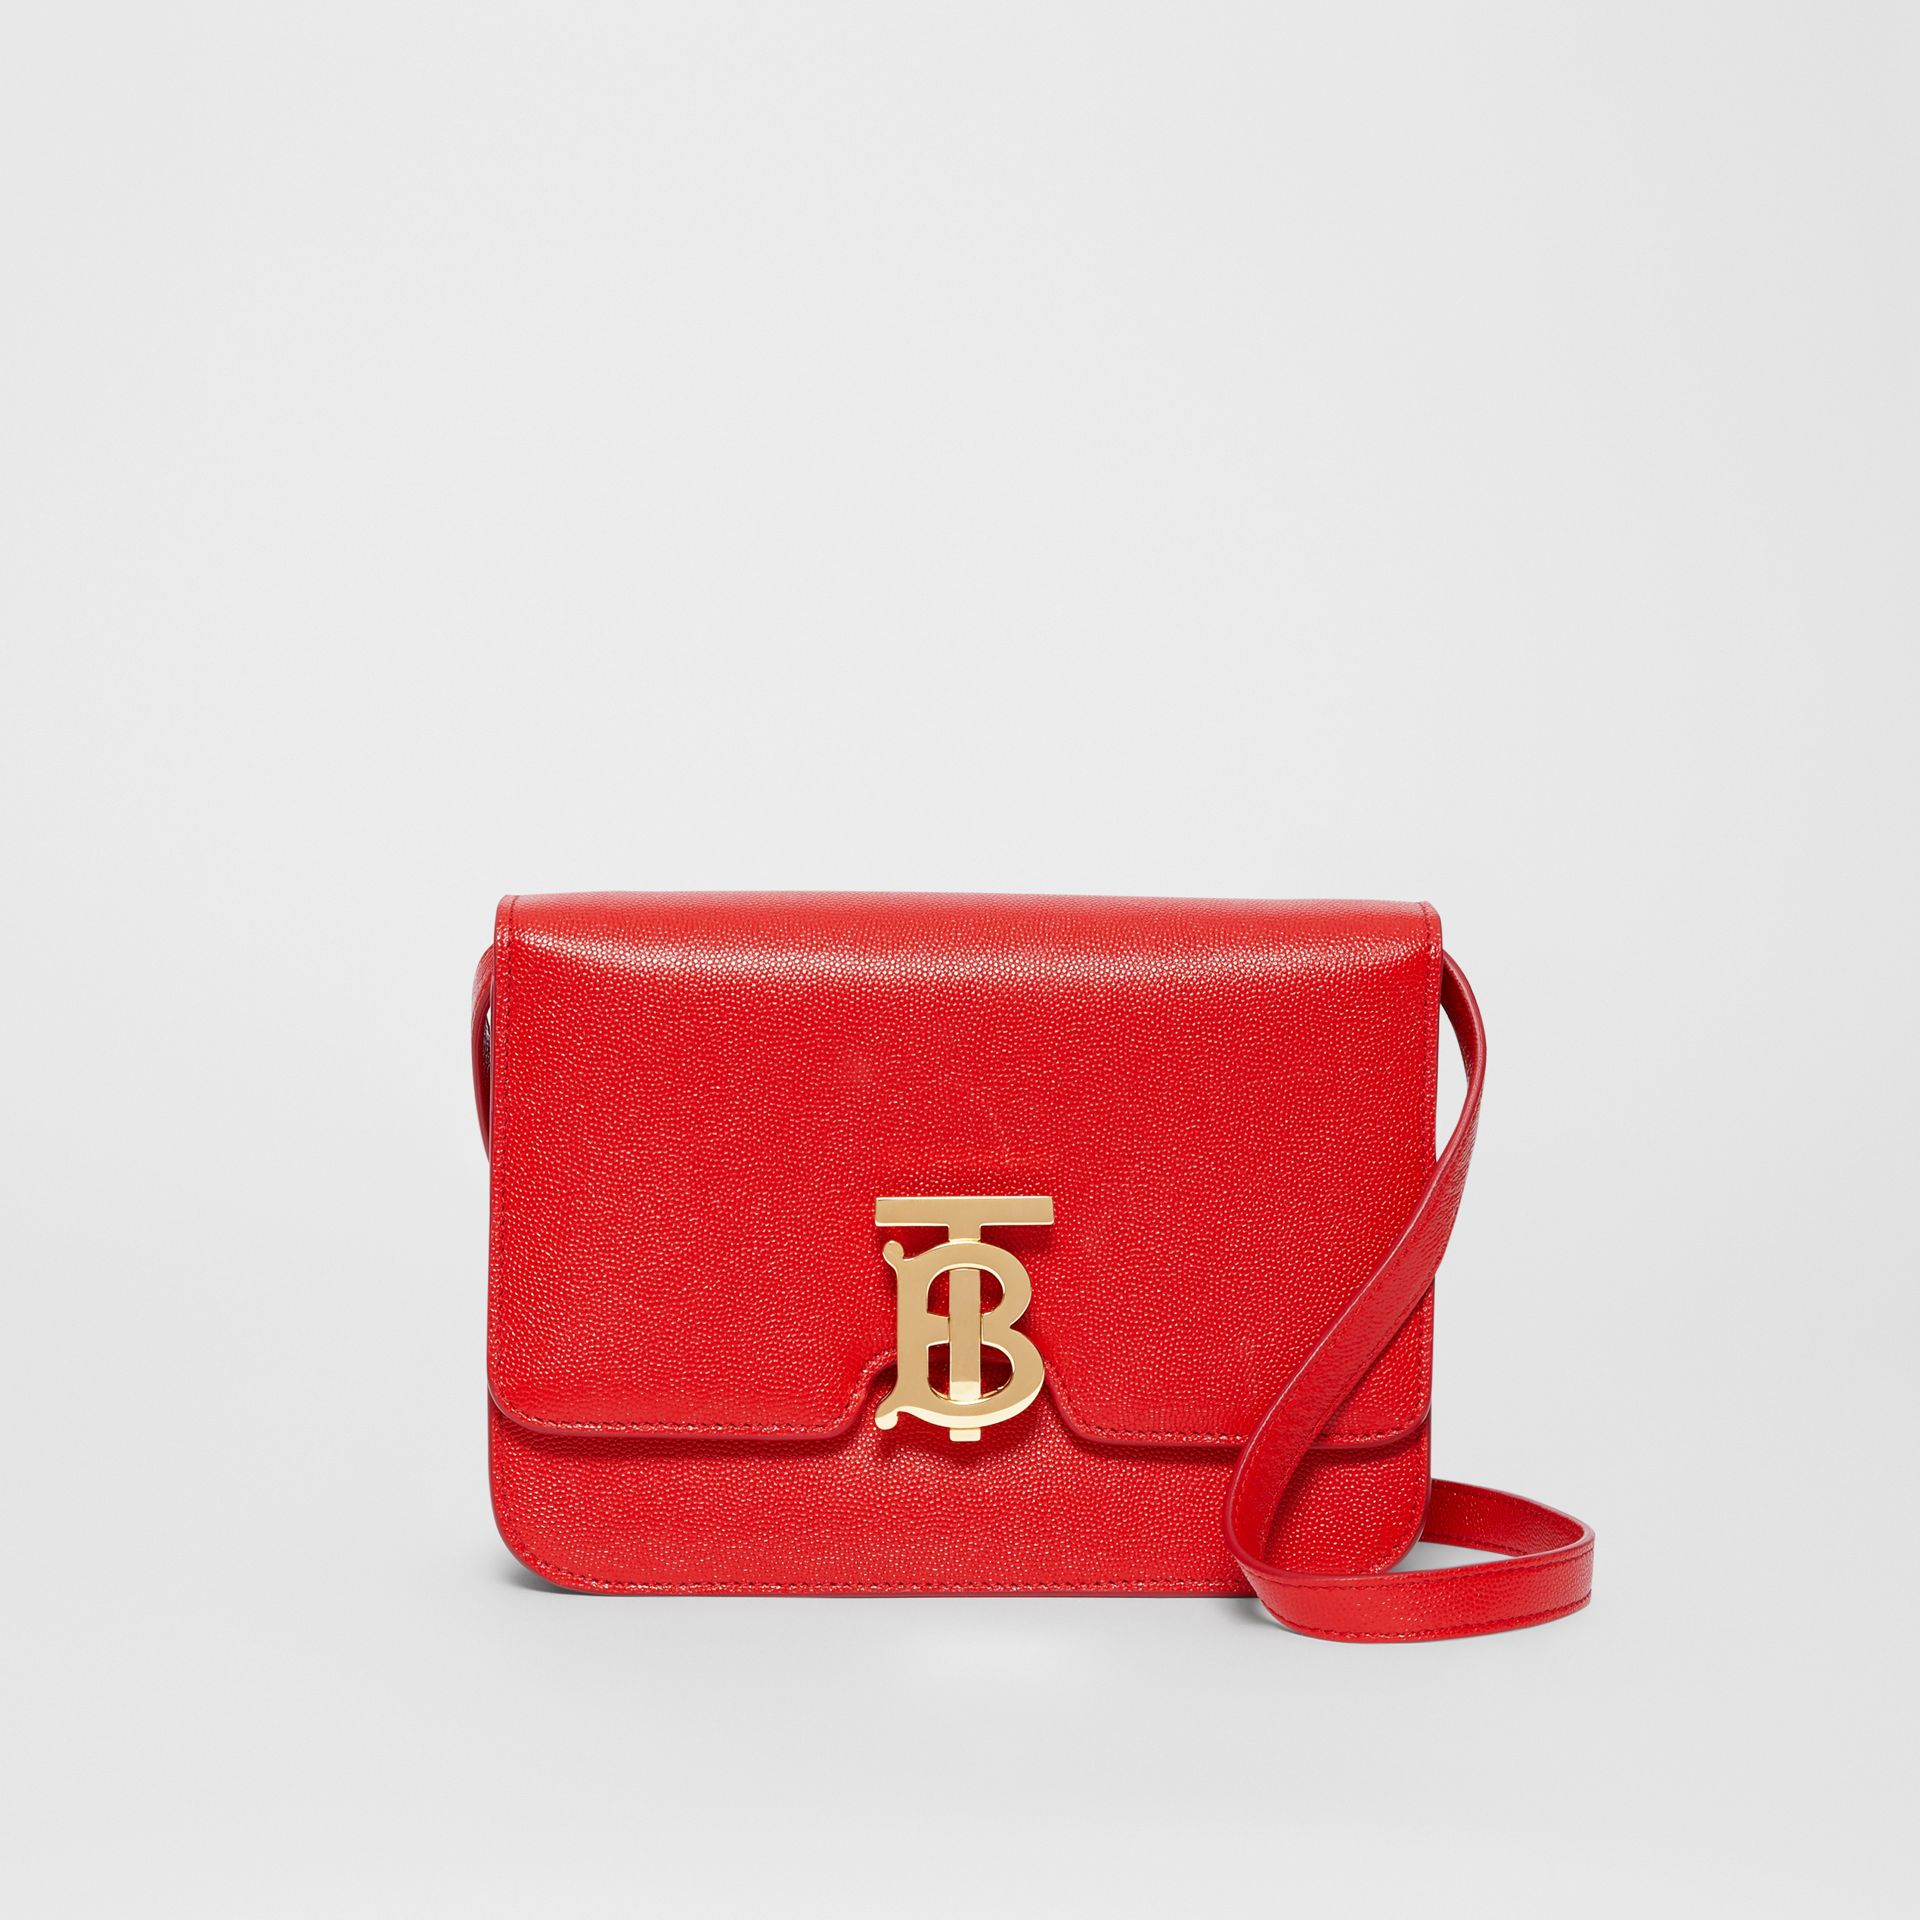 Small Grainy Leather TB Bag in Bright Red - Women | Burberry Singapore - gallery image 0